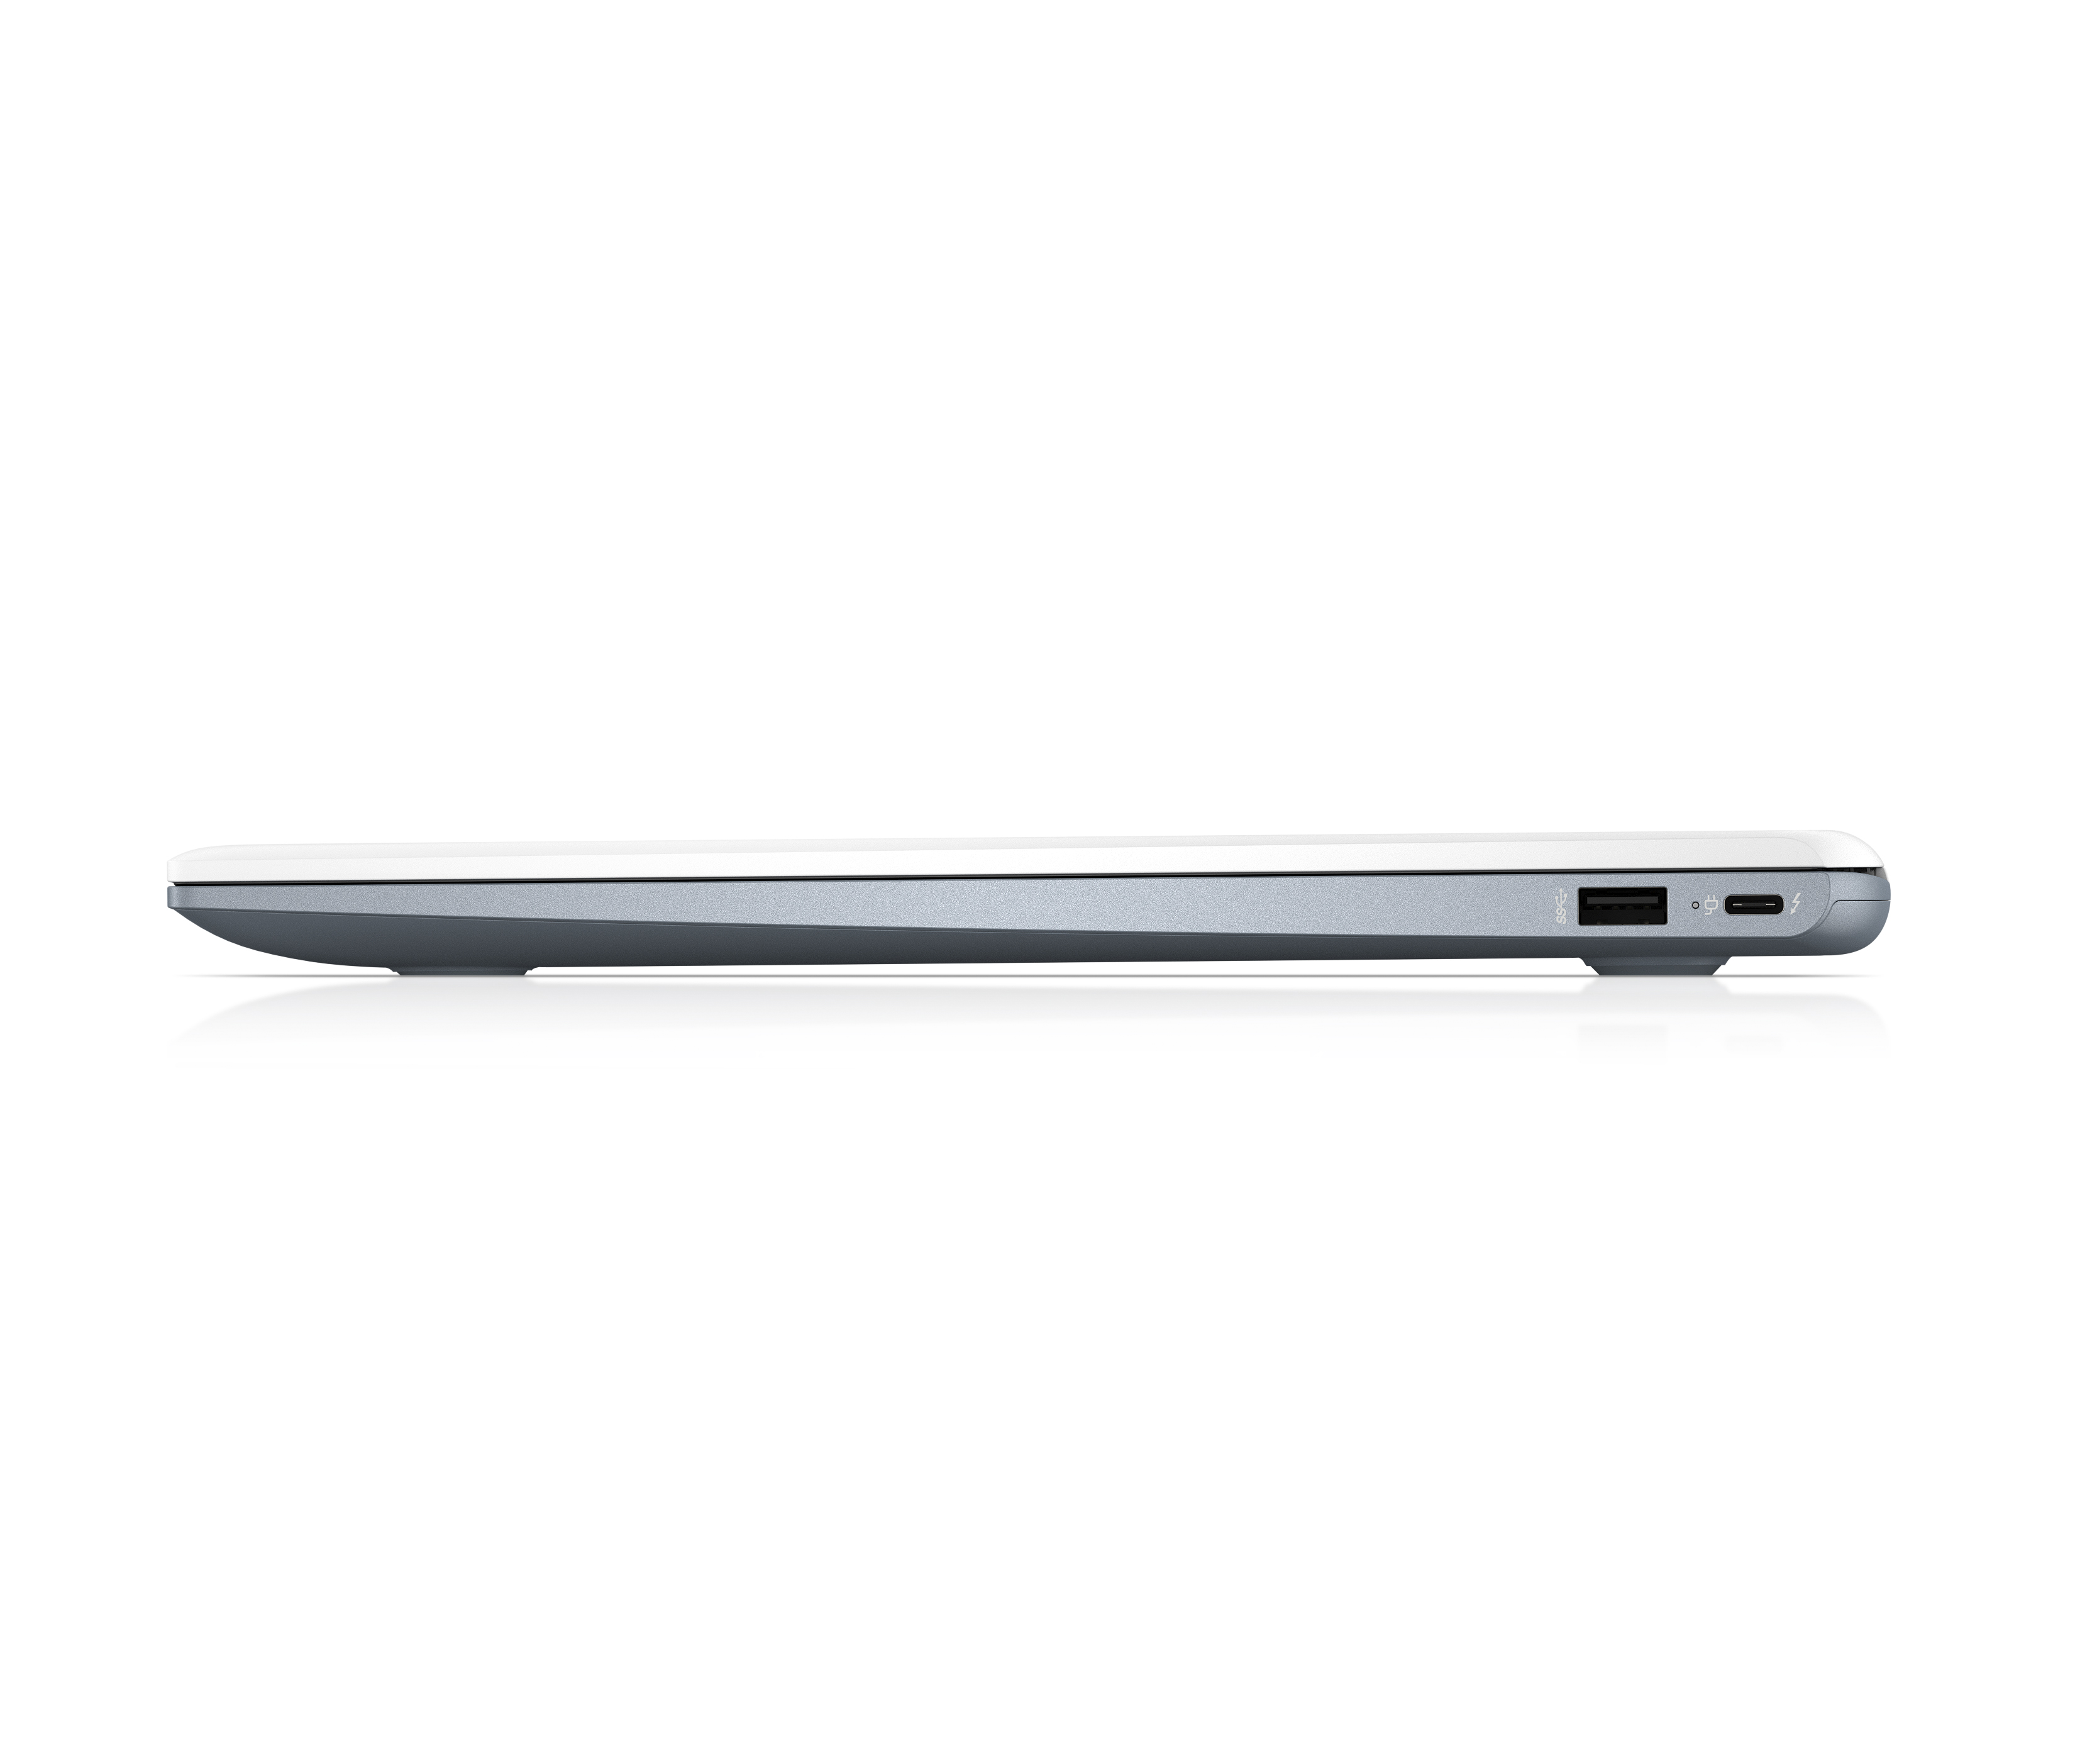 New HP Chromebook 15 adds touchscreen, premium finish for